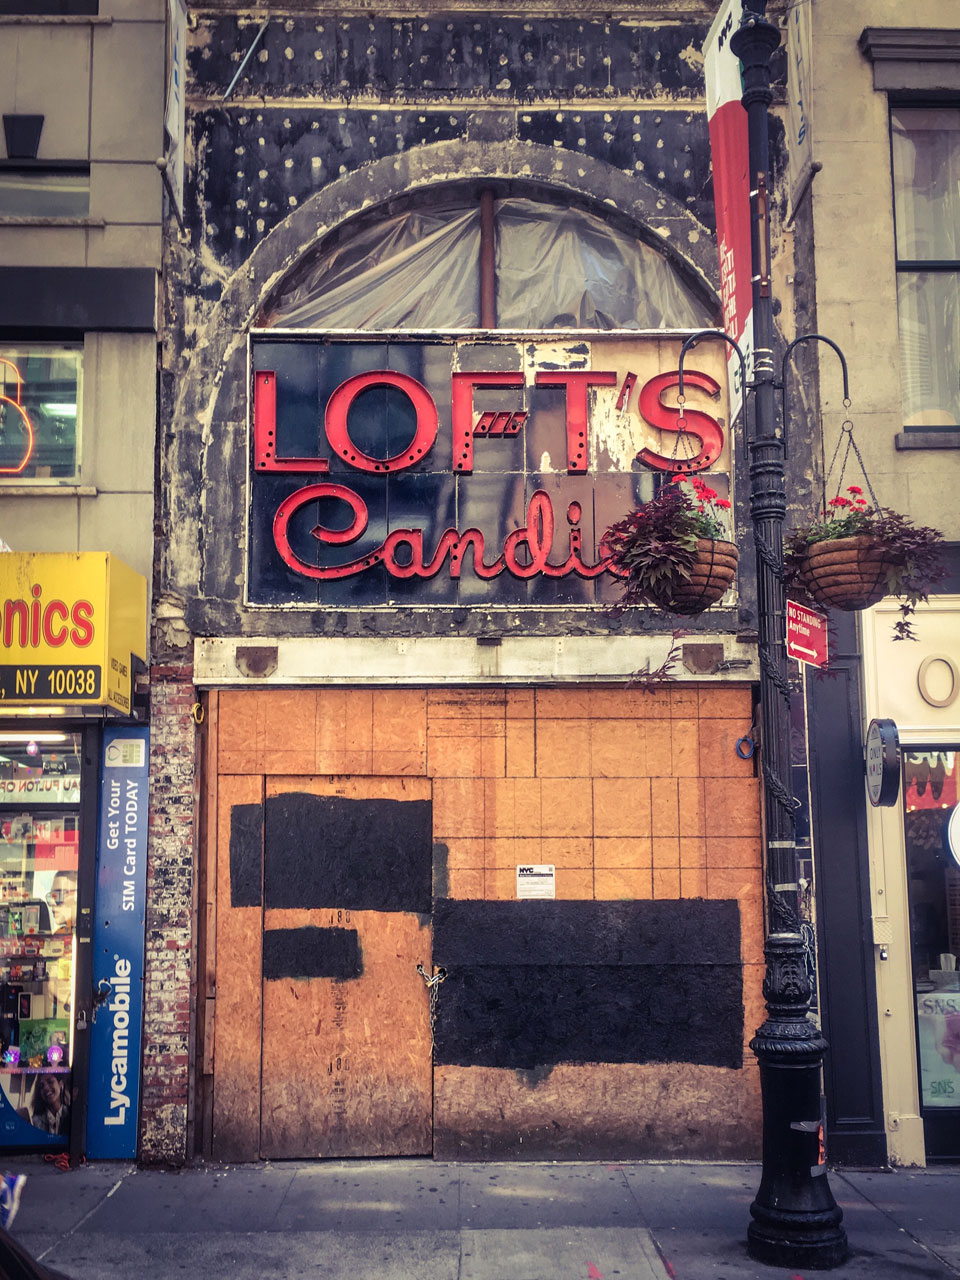 #DisappearingNewYork: Closed down, Loft's Candles, Dutch St, Lower Manhattan, NYC © Helen Jones-Florio.